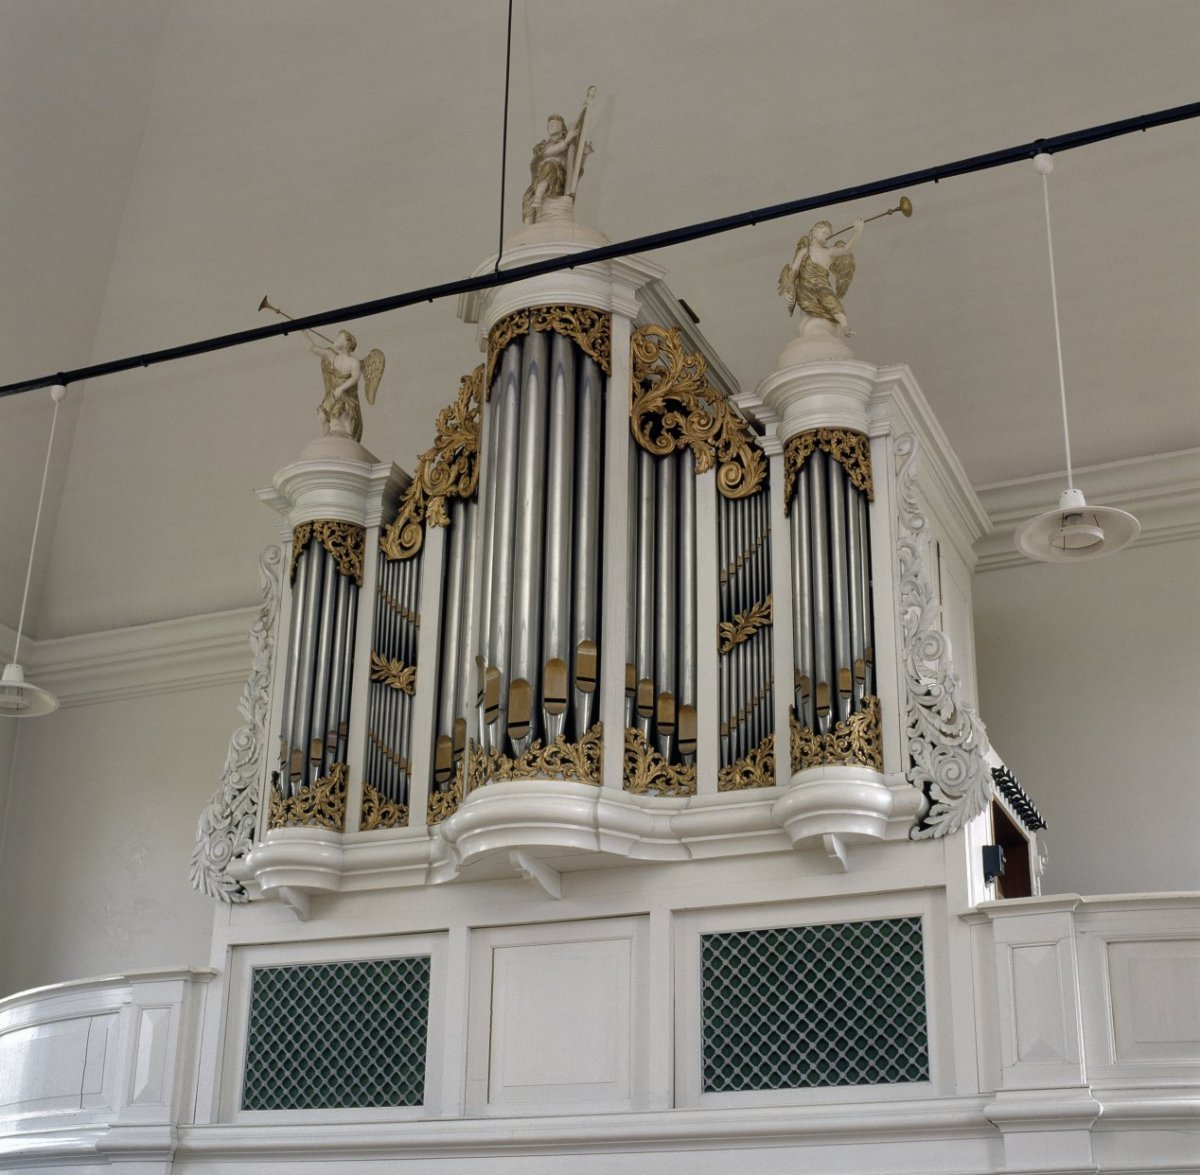 https://upload.wikimedia.org/wikipedia/commons/1/11/Interieur%2C_aanzicht_orgel_-_Gasselternijveen_-_20370573_-_RCE.jpg